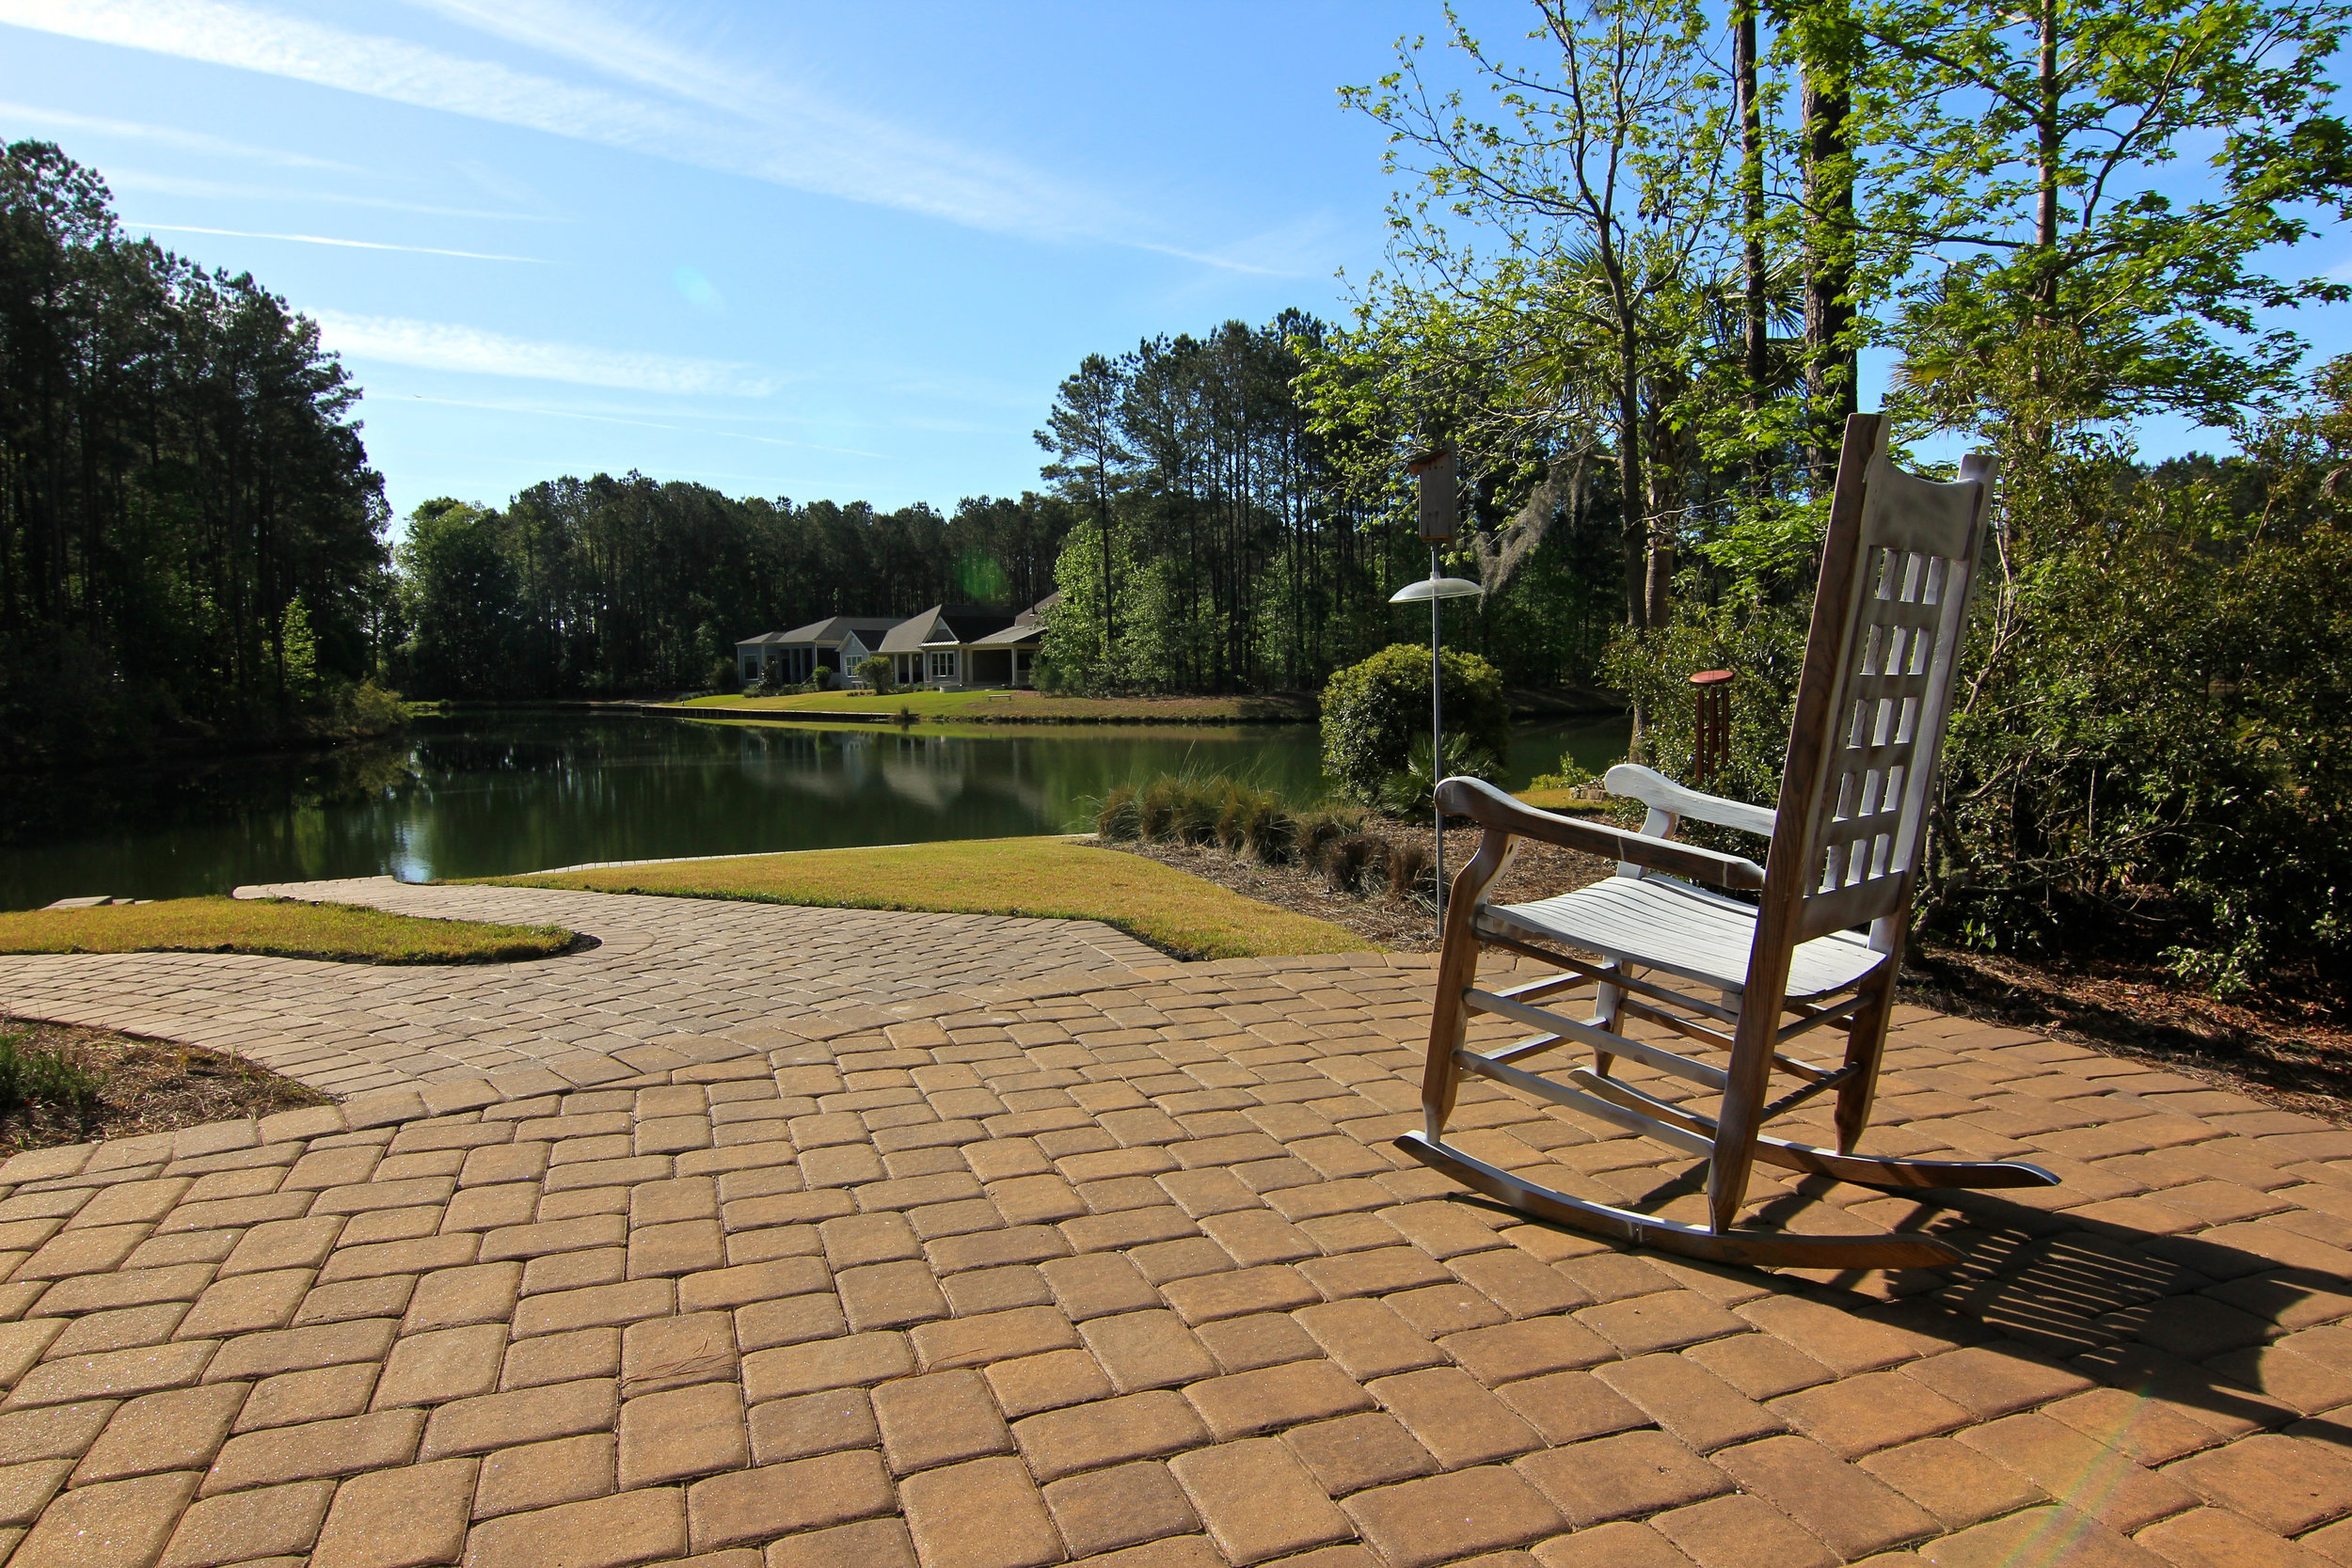 T-Pattern - Used primarily with 2pc pavers, this pattern creates an alternating T or L depending on your view!